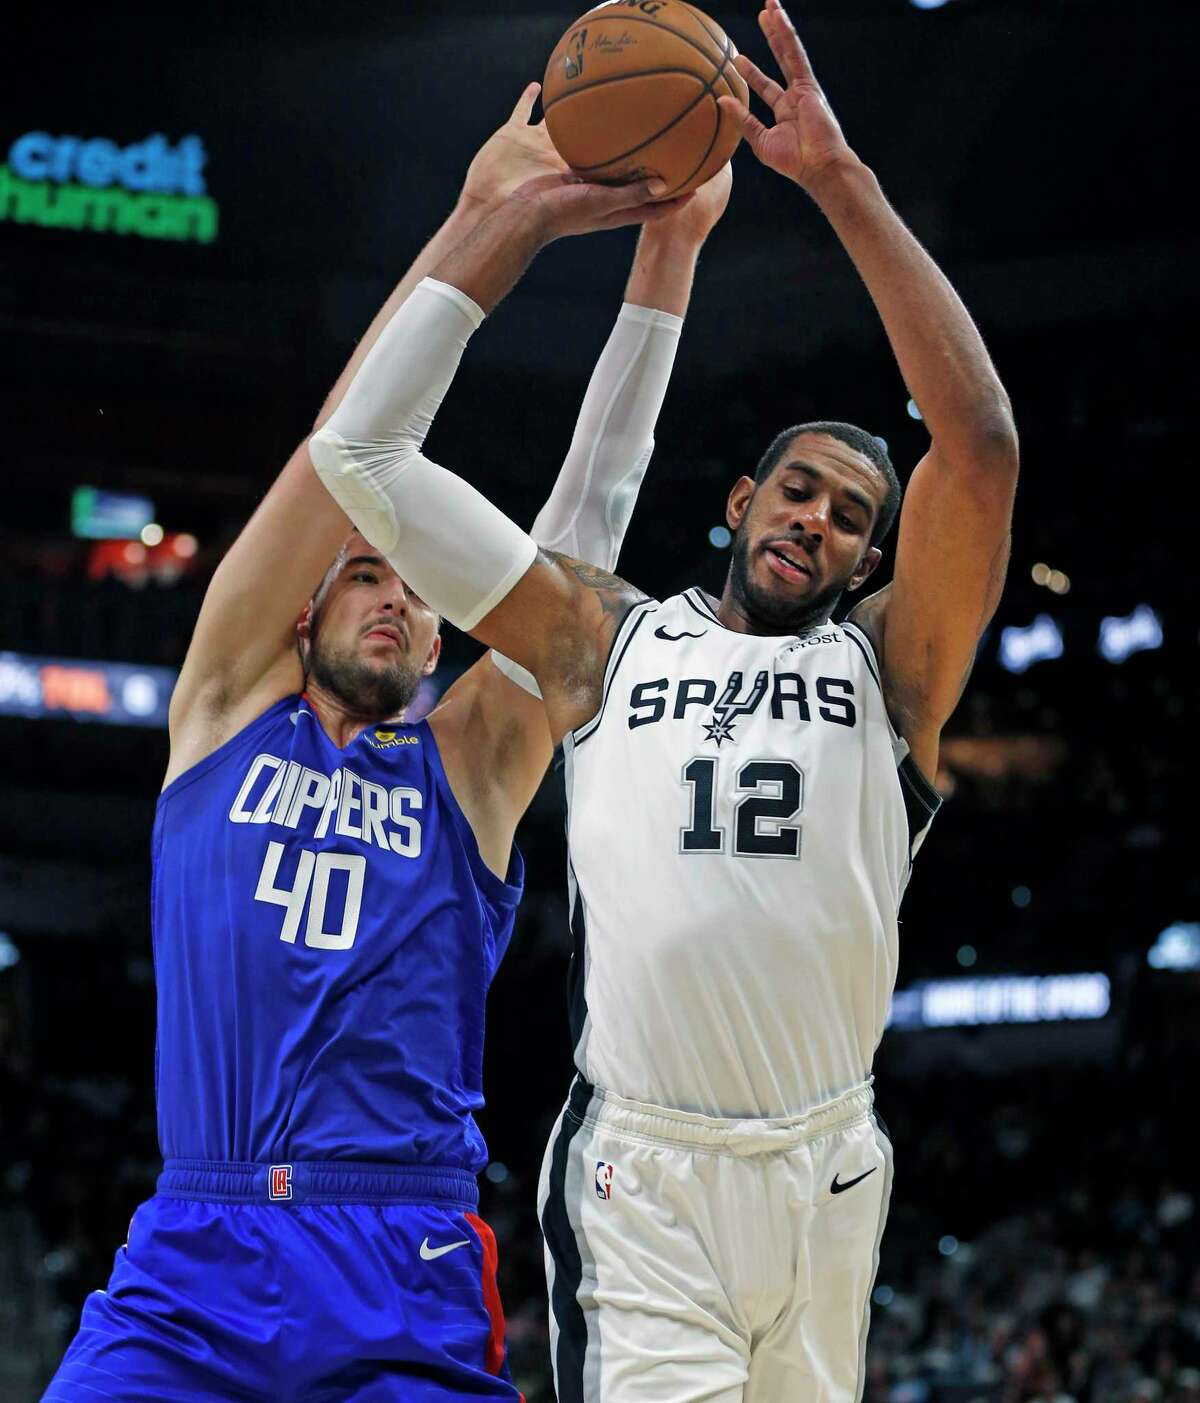 LaMarcus Aldridge #12 of the San Antonio Spurs is fouled by Ivica Zubac #40 of the Los Angeles Clippers in the first half of the game between the San Antonio Spurs and the Los Angeles Clippers on Friday, November 29,2019 at AT&T Center